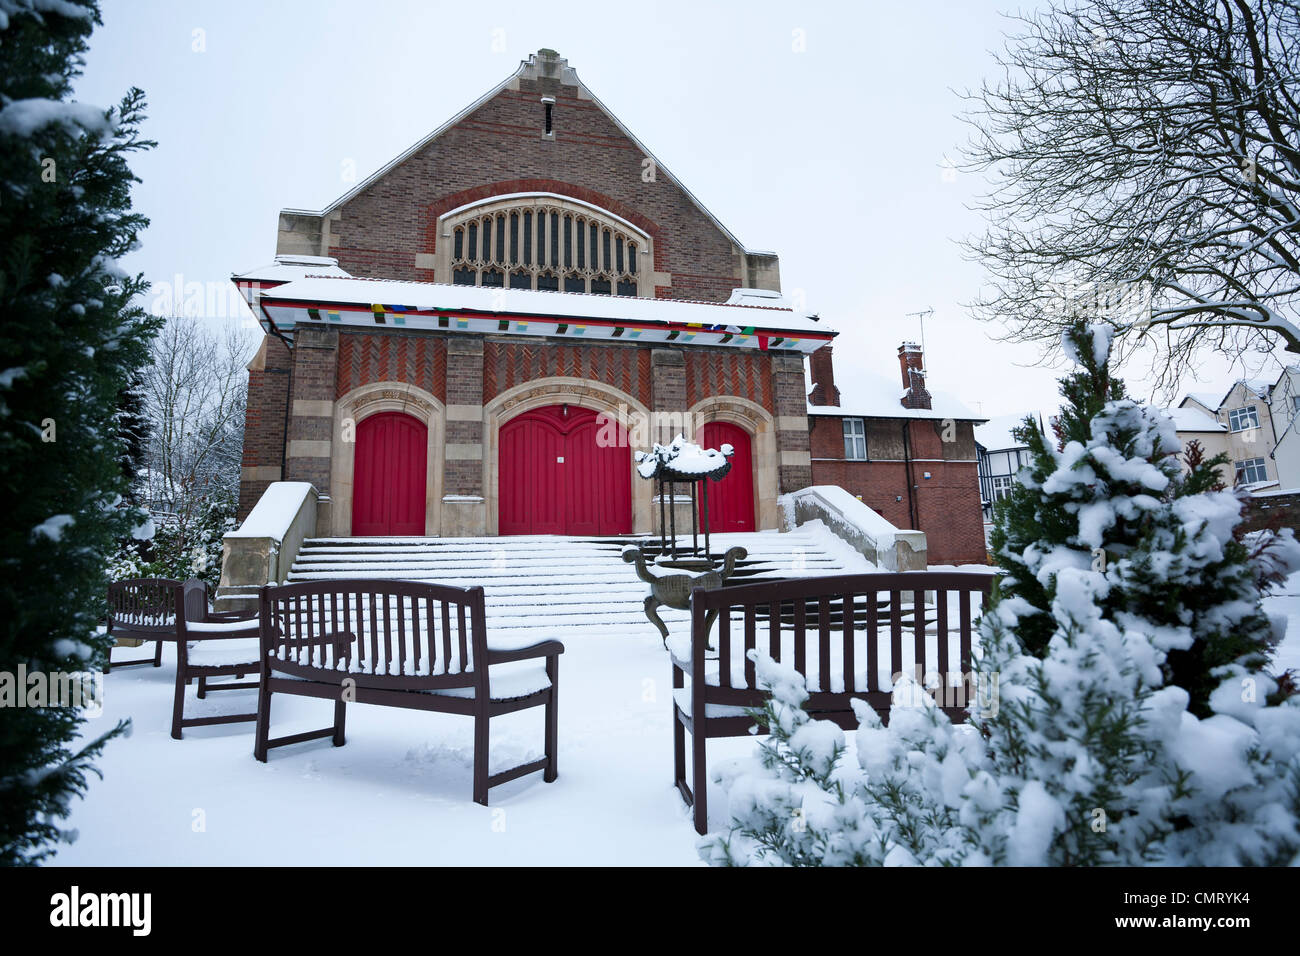 Winter snow at the True Buddha Temple in Willesden Green. - Stock Image